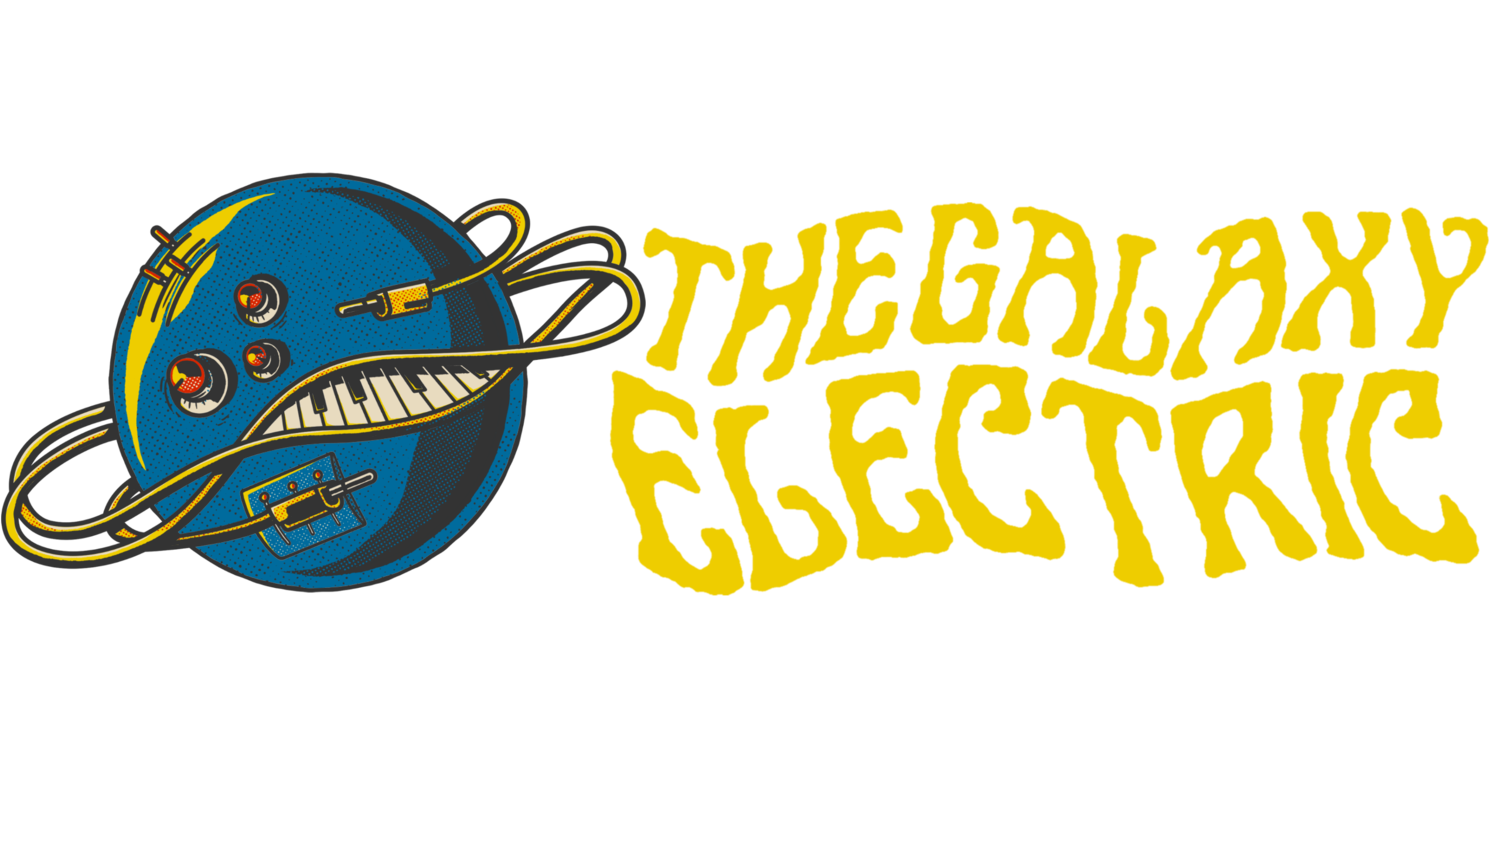 The Galaxy Electric